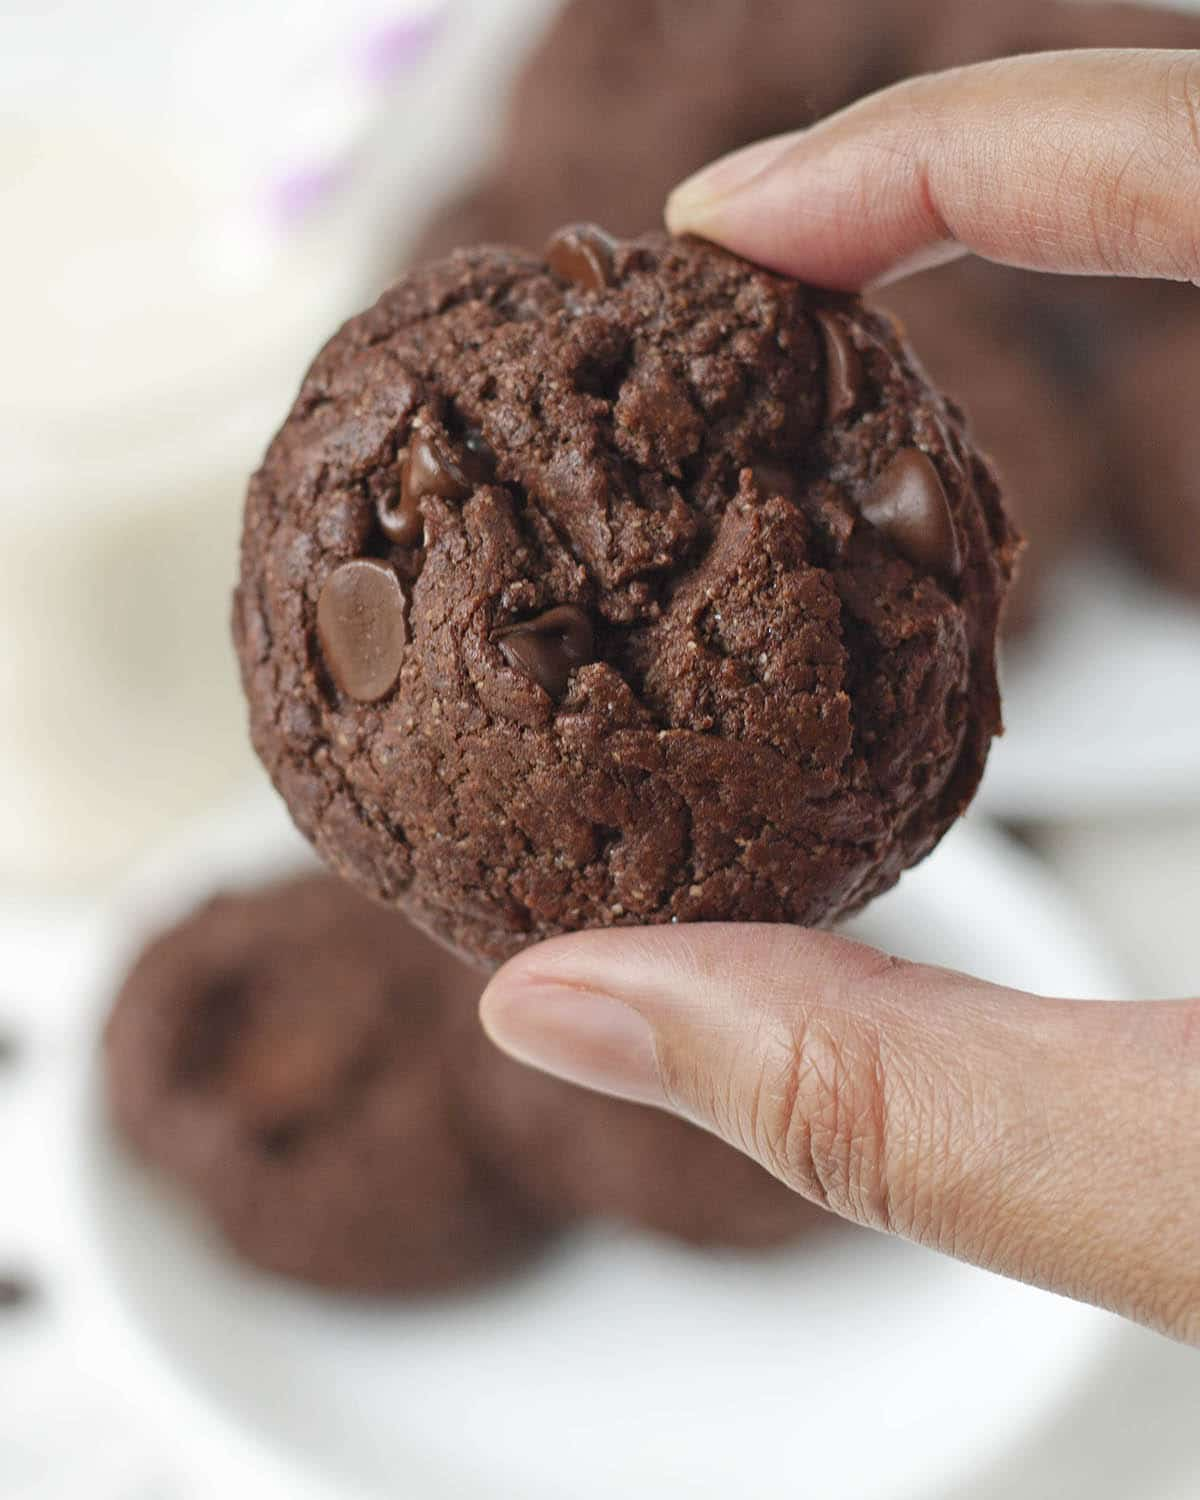 Image shows a hand holding a chocolate cookie close up to the camera.